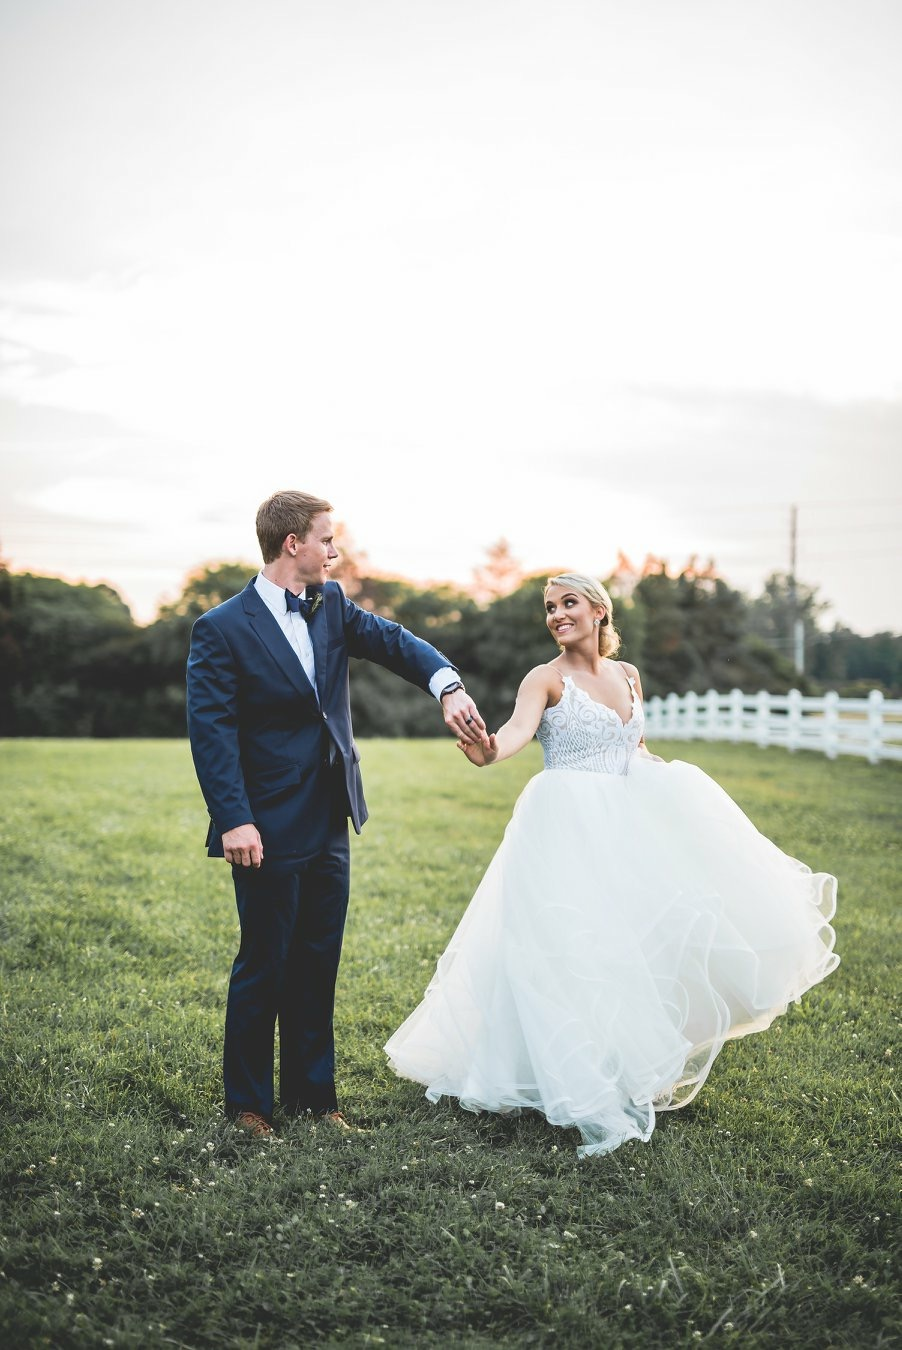 savannah-bridal-shop-ivory-and-beau-bride-bridget-pepper-by-blush-by-hayley-paige-montana-burkett-photography-savannah-wedding-gown-savannah-wedding-dress-3.jpeg